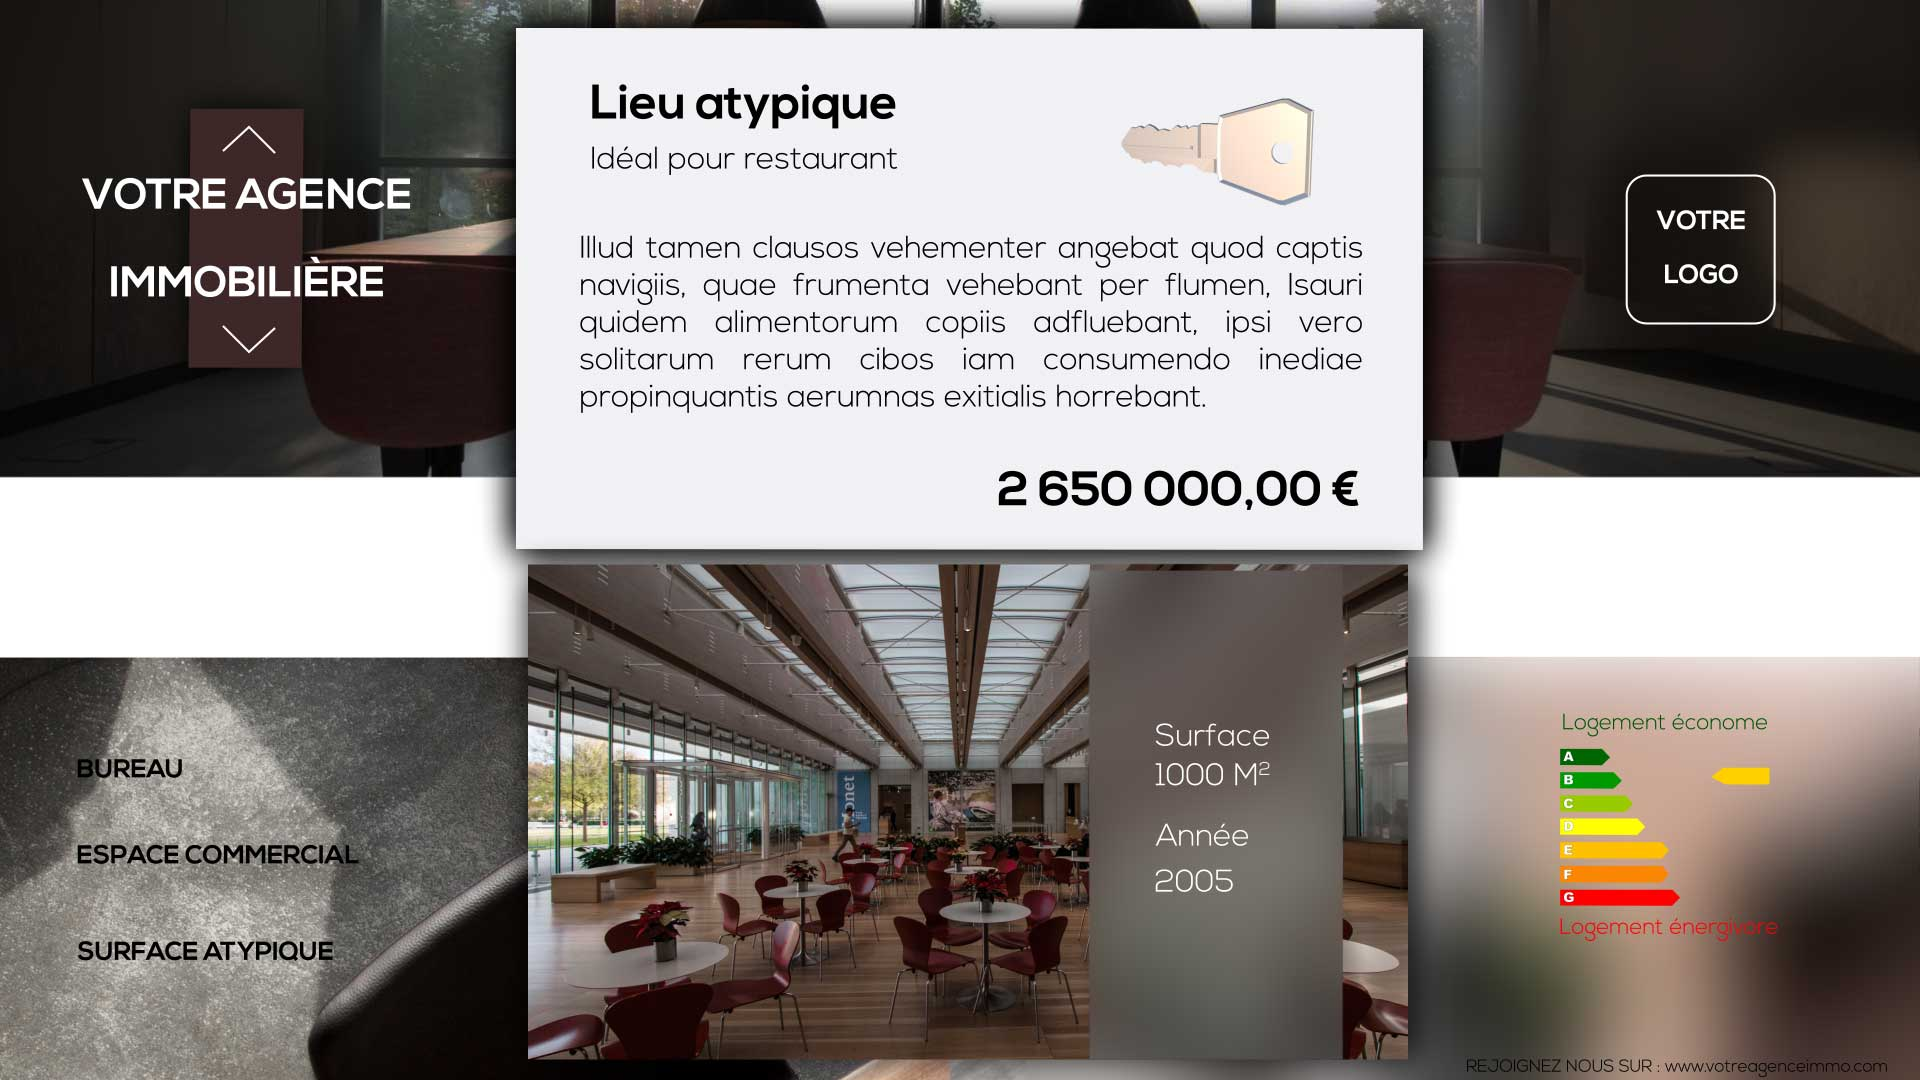 image Template immobilier 004N-min